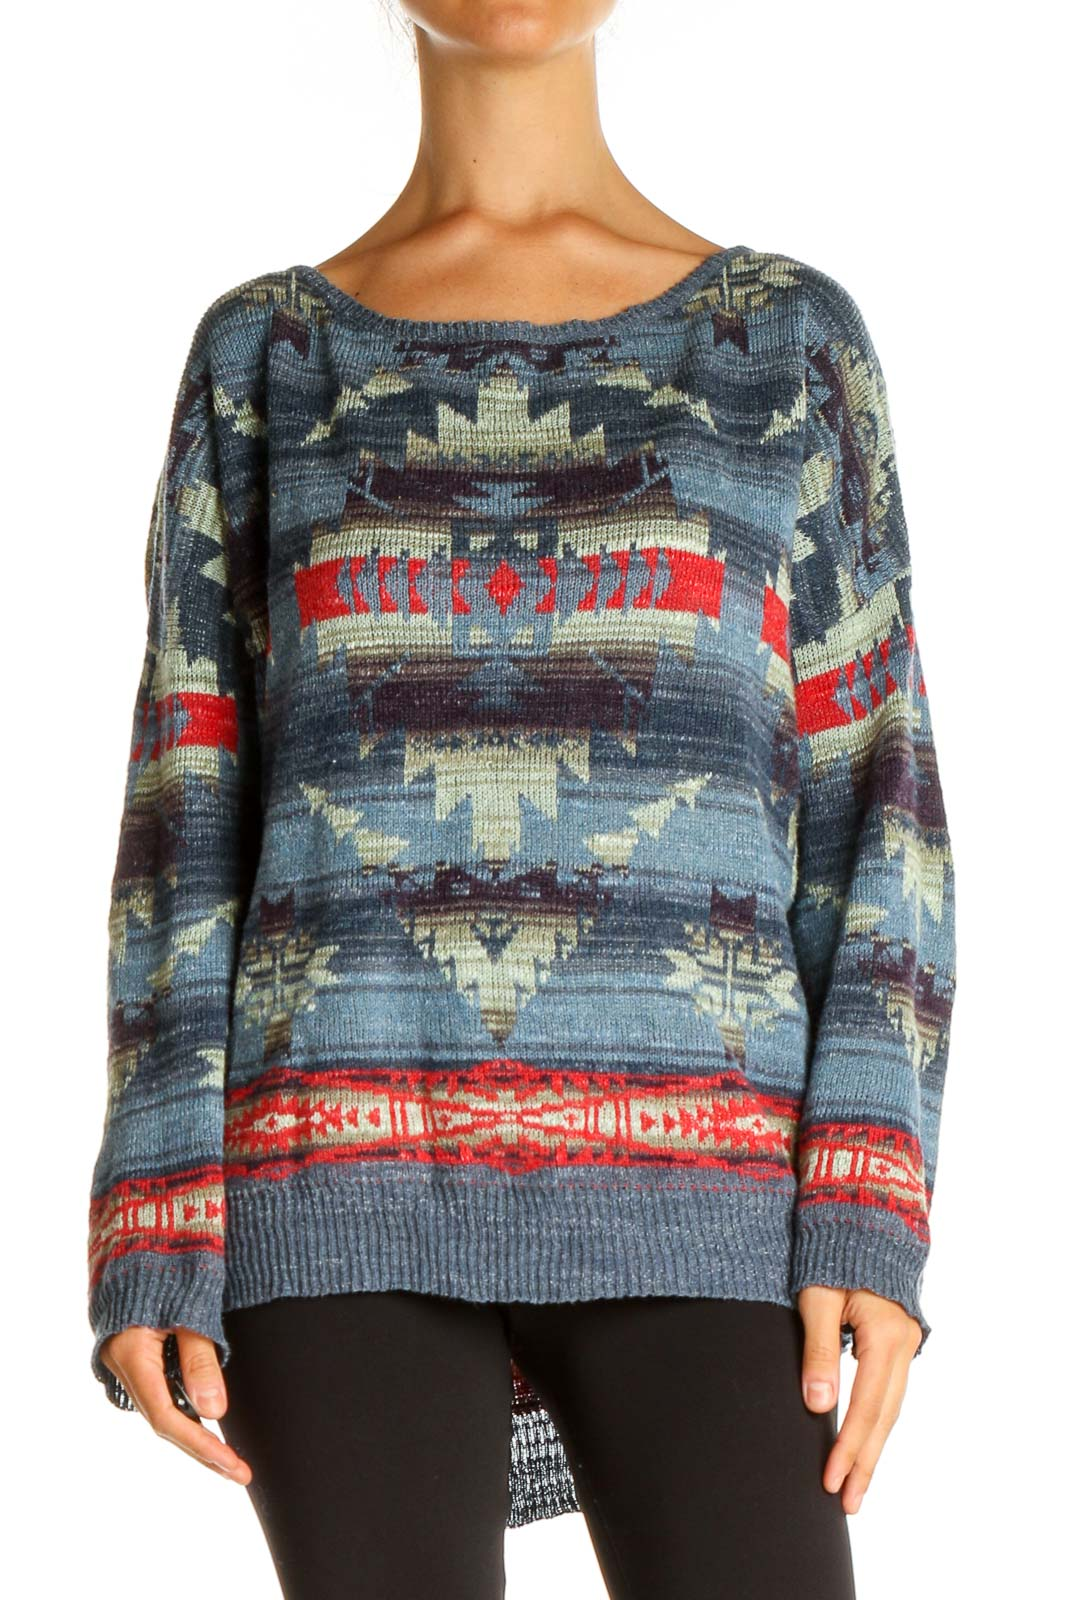 Blue Aztec Print All Day Wear Sweater Front